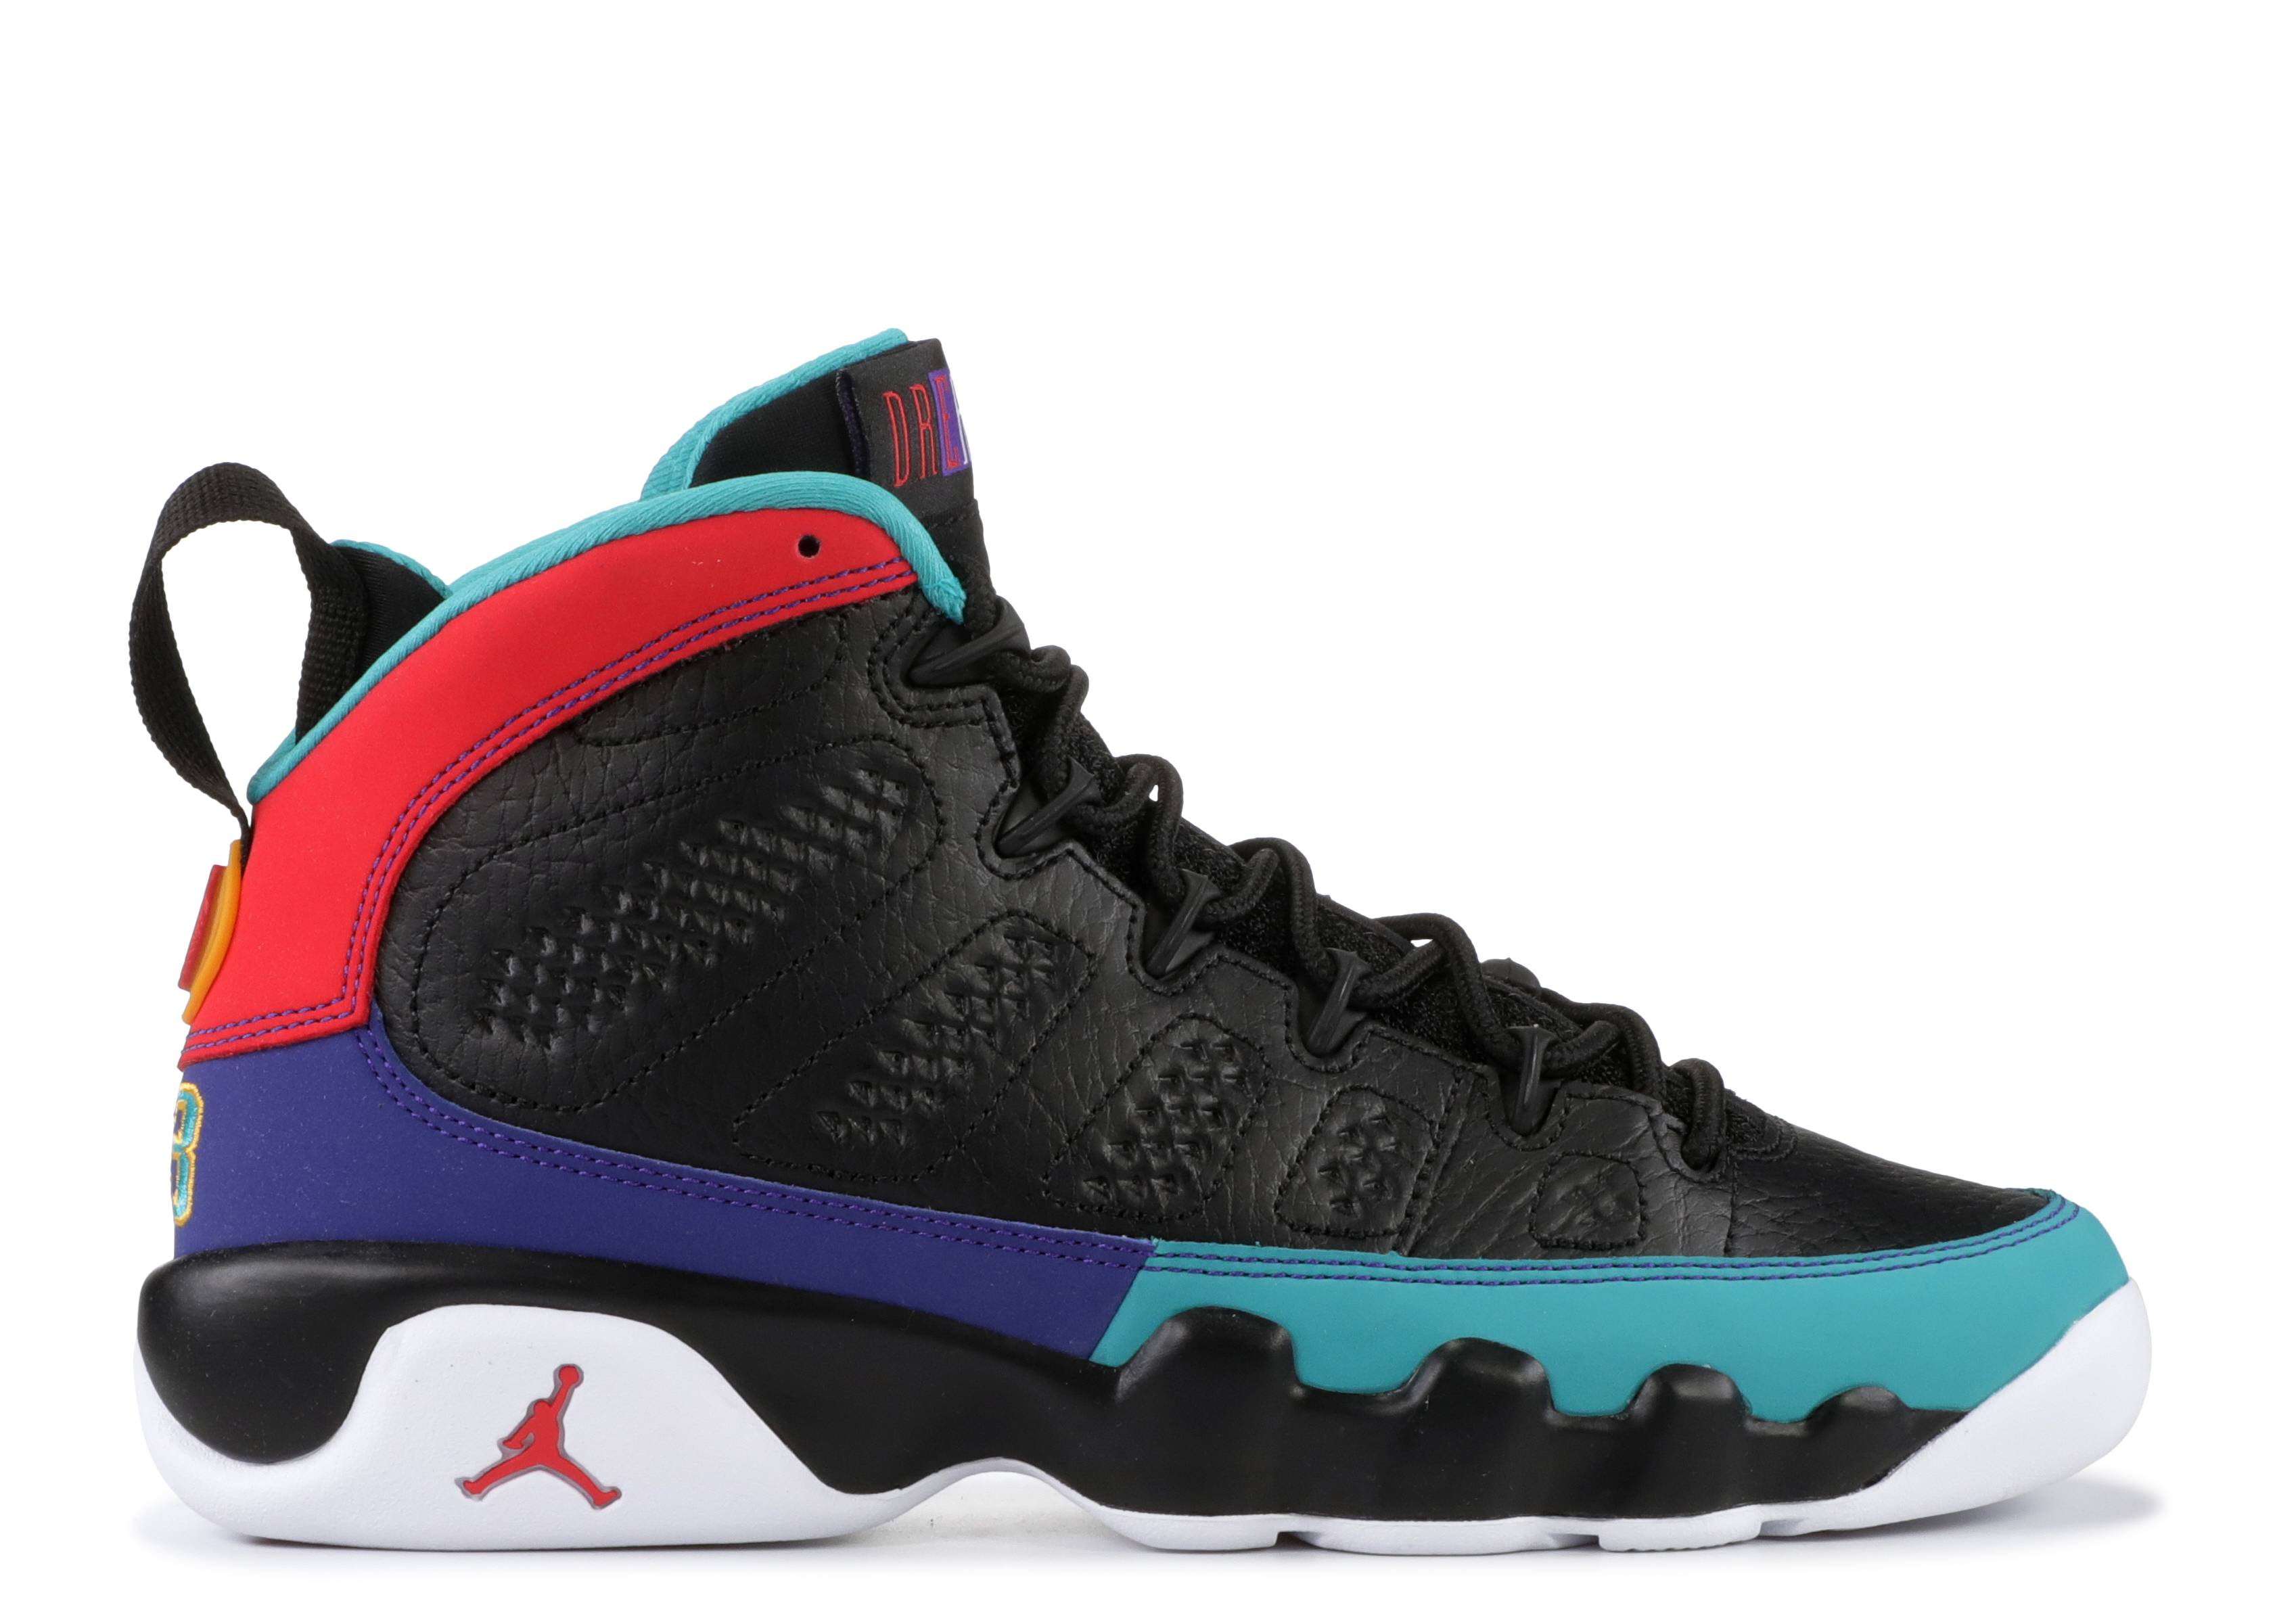 ff9348a9a063 Air Jordan 9 (IX) Shoes - Nike